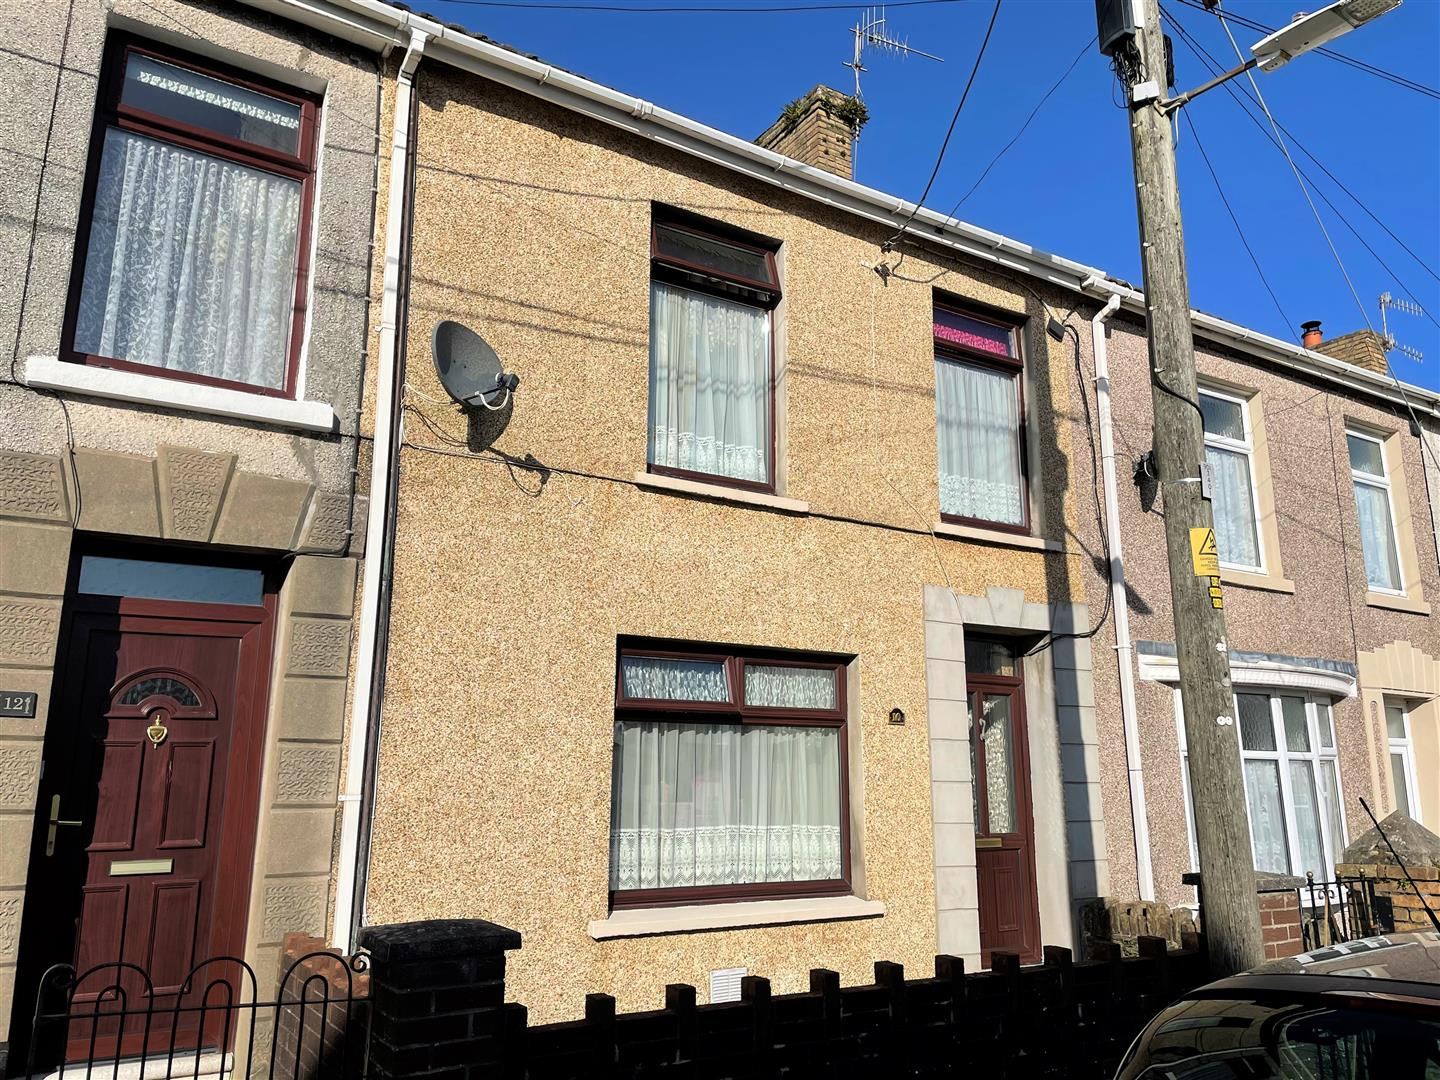 Mansel Street, Burry Port, SA16 0BD